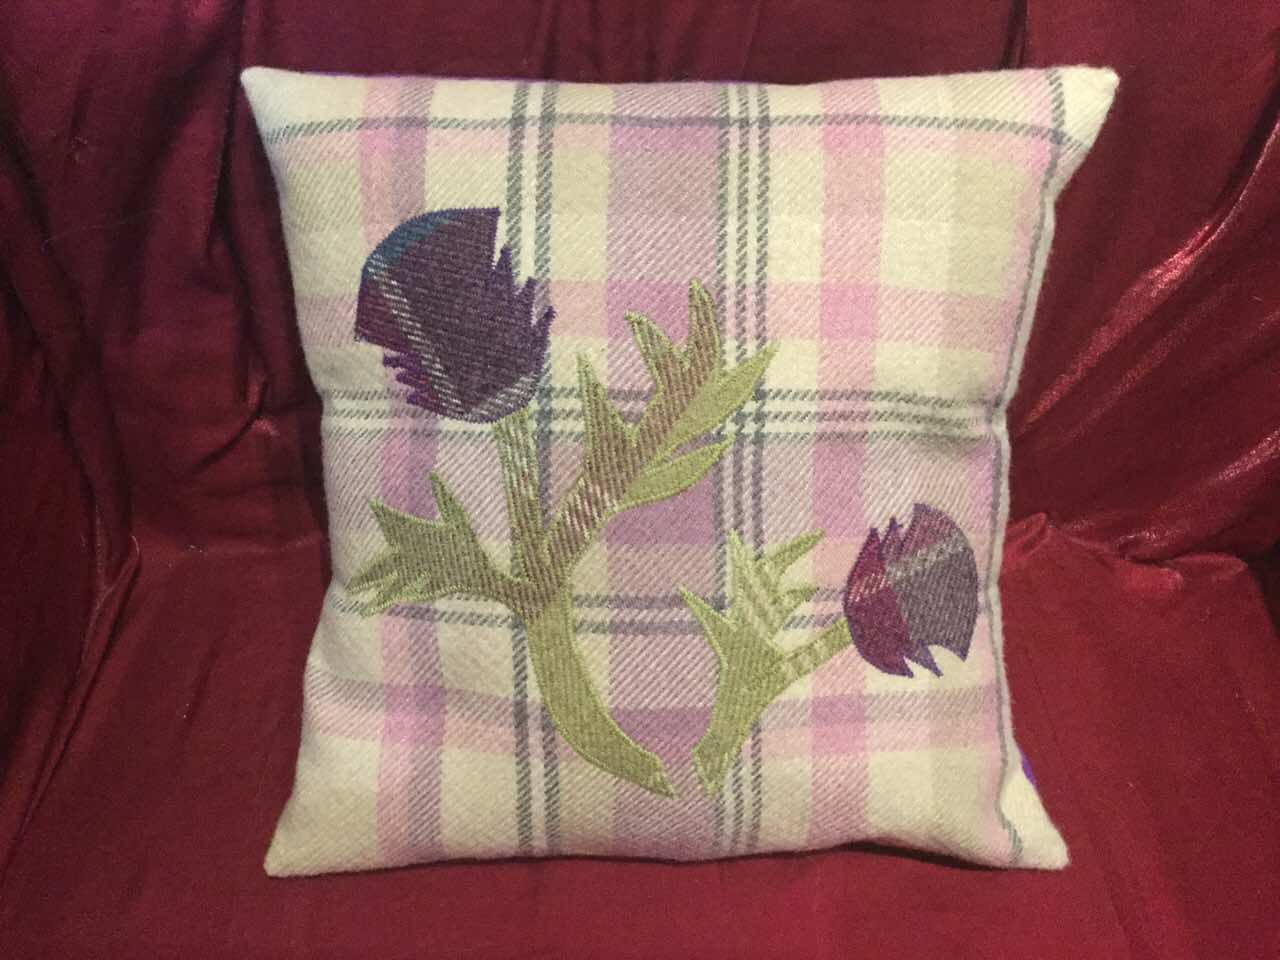 Thistle suit your home nicely handmade purple u green on pink